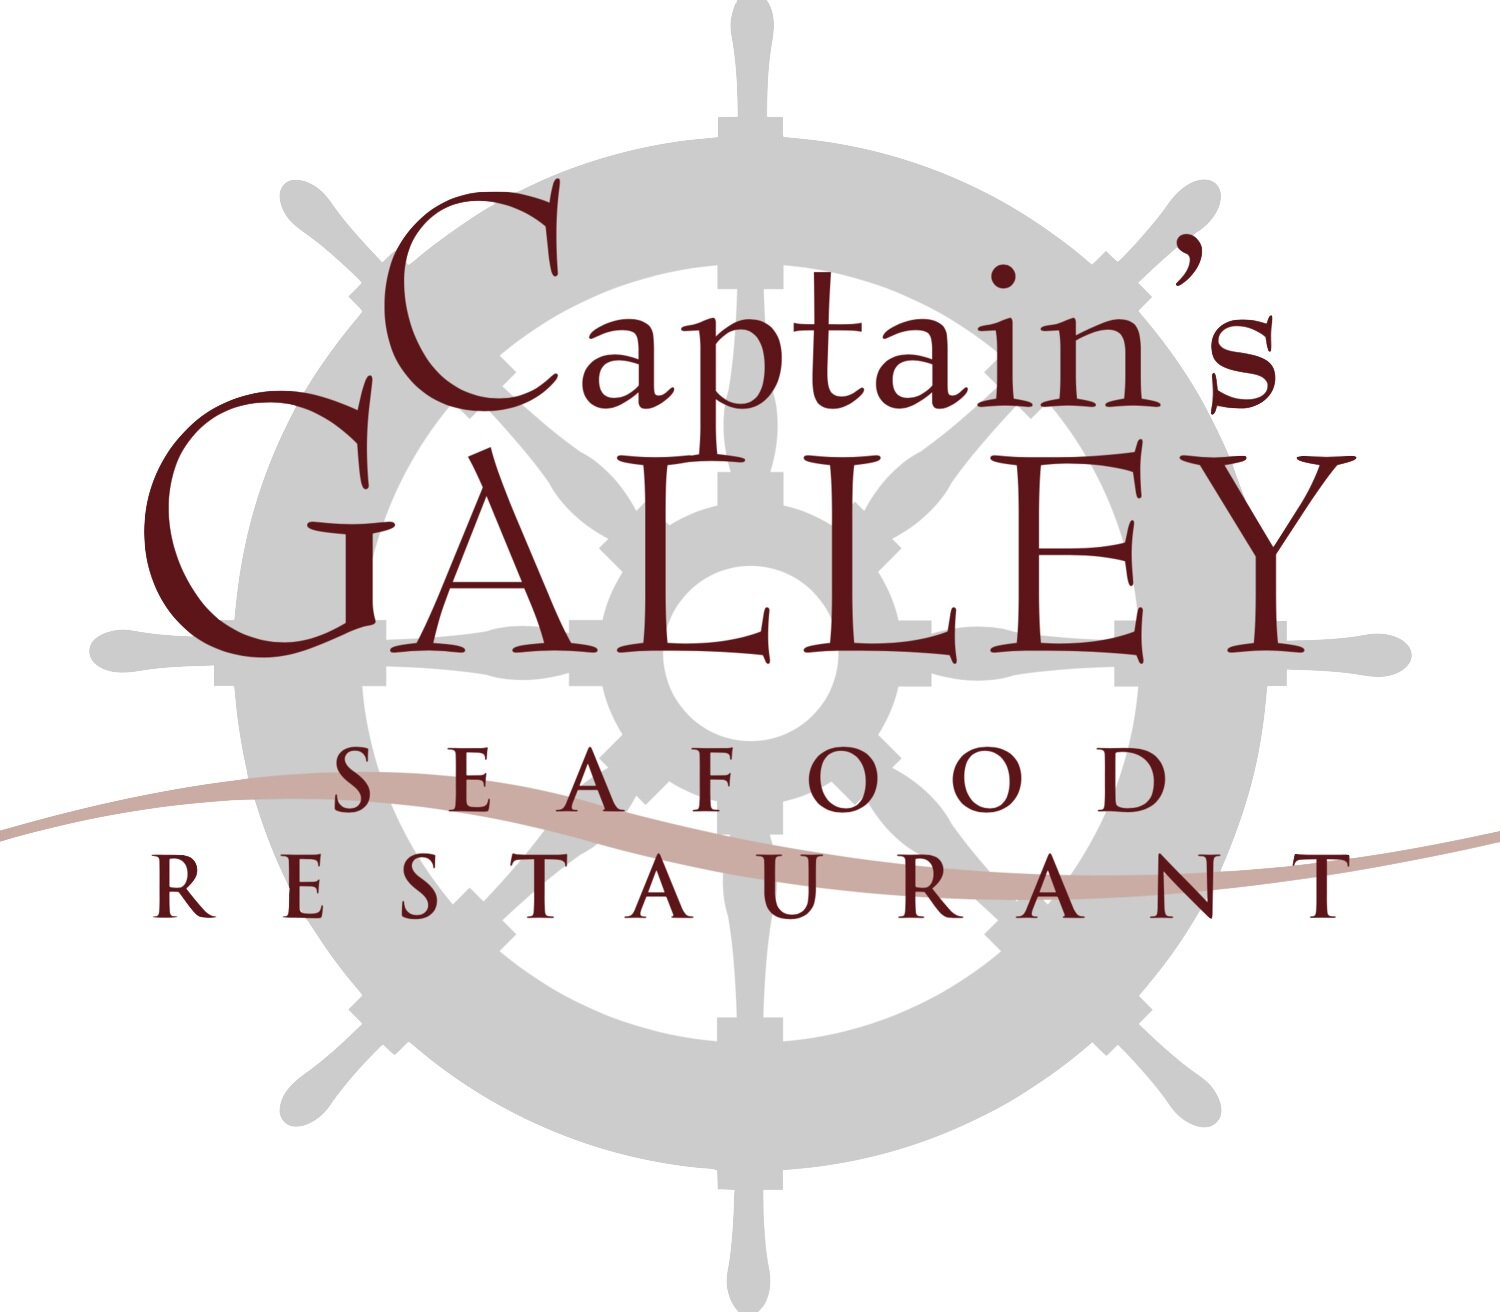 Captain's Galley